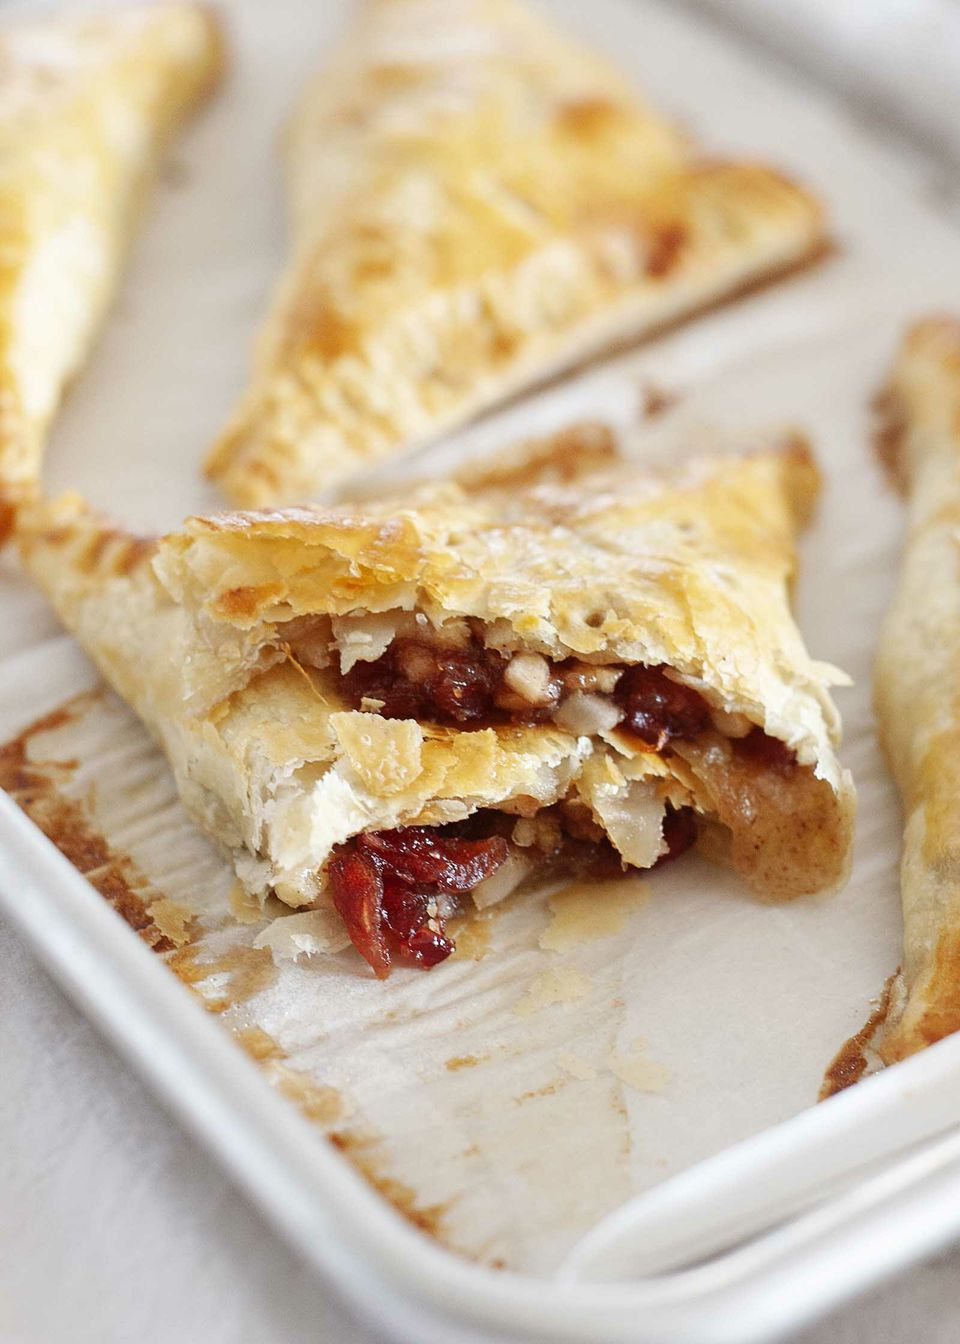 Turnover recipe using puff pastry shows the apple filling.